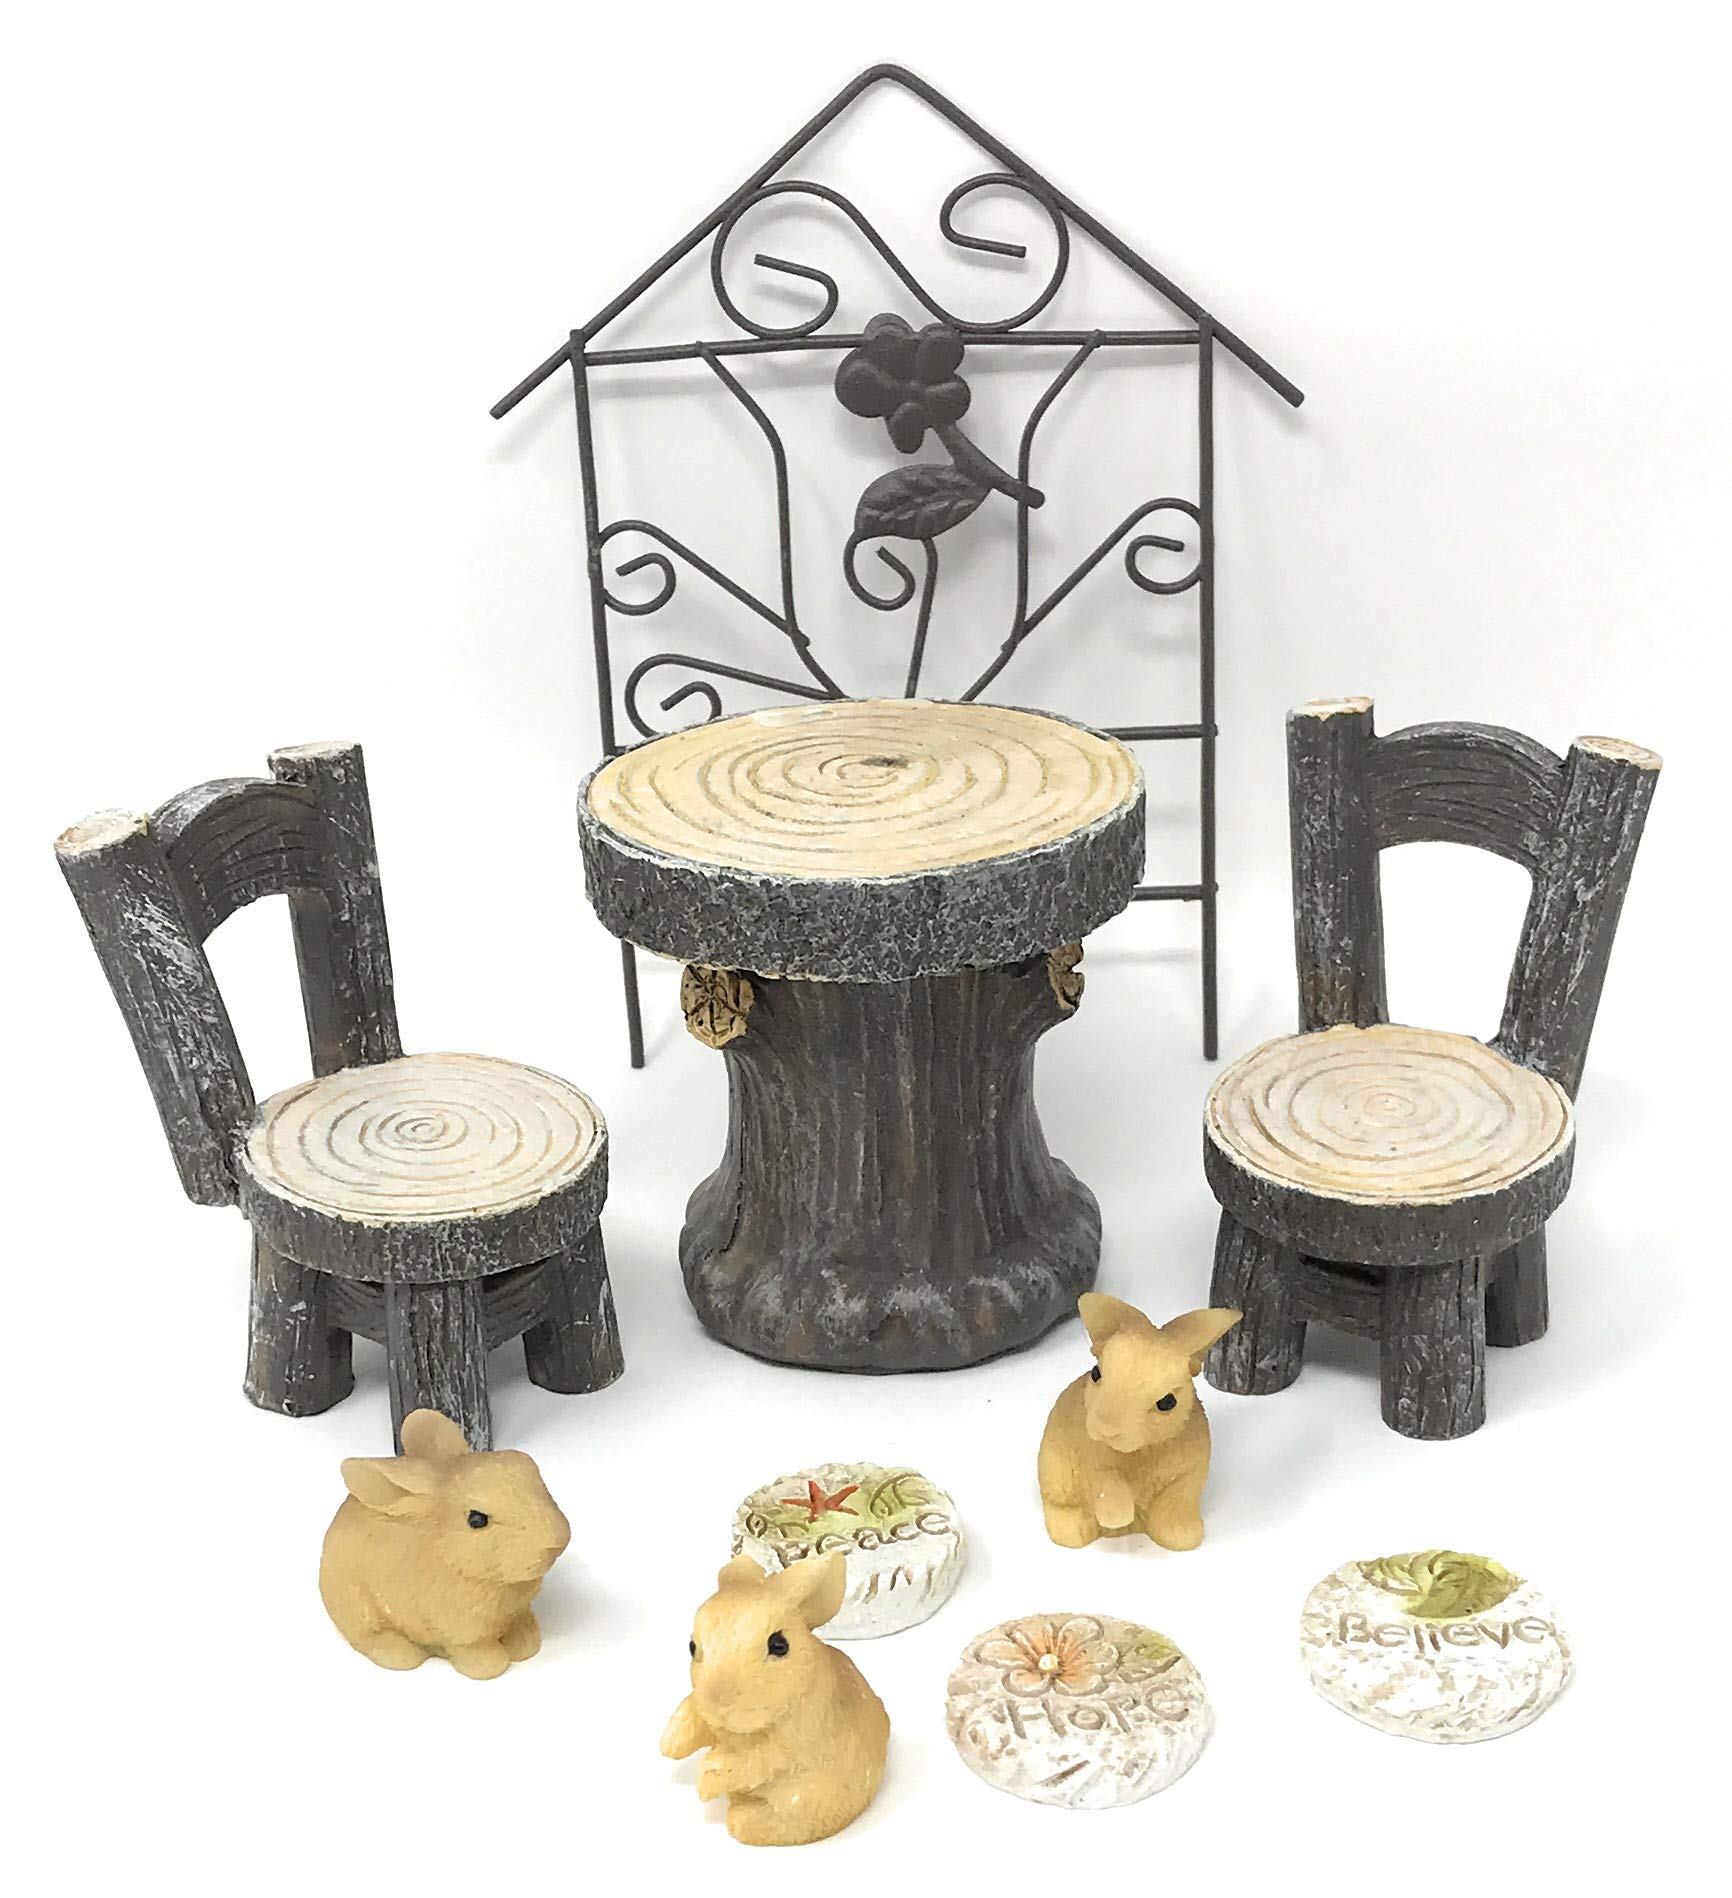 Myoan Brand Miniature Fairy Garden Accessories Bundle with 1 Table, 2 Chairs, 3 Rabbits, 3 Stepping Stones and 1 Trellis (10 Items)